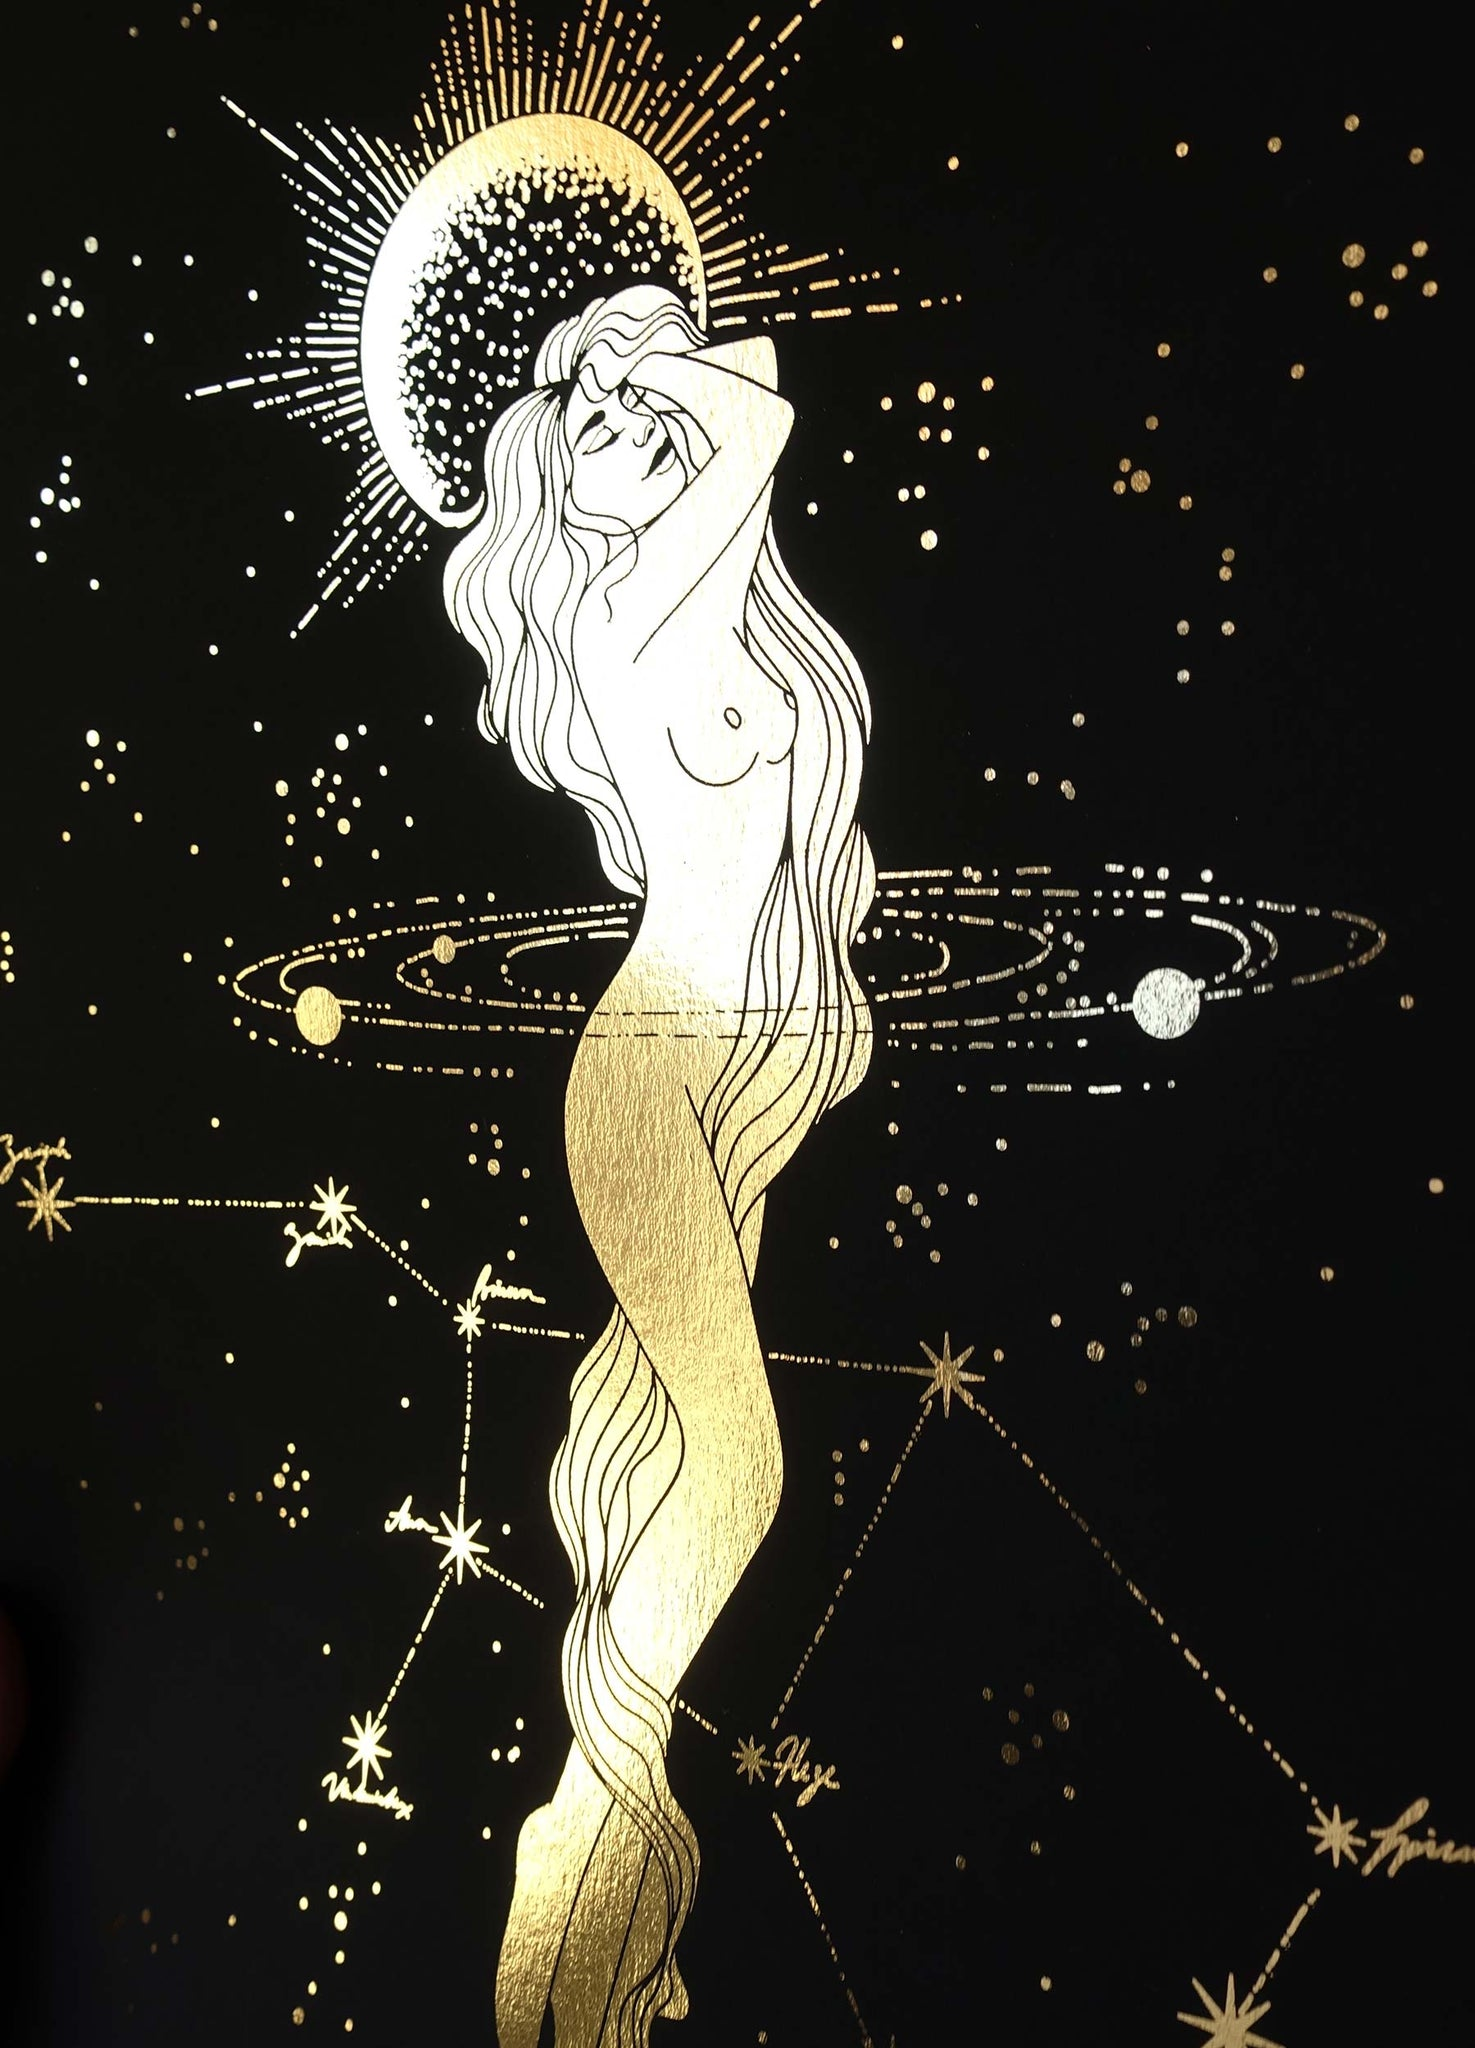 Virgo Zodiac Sign and Constellation Print gold foil on black paper by Cocorrina & Co